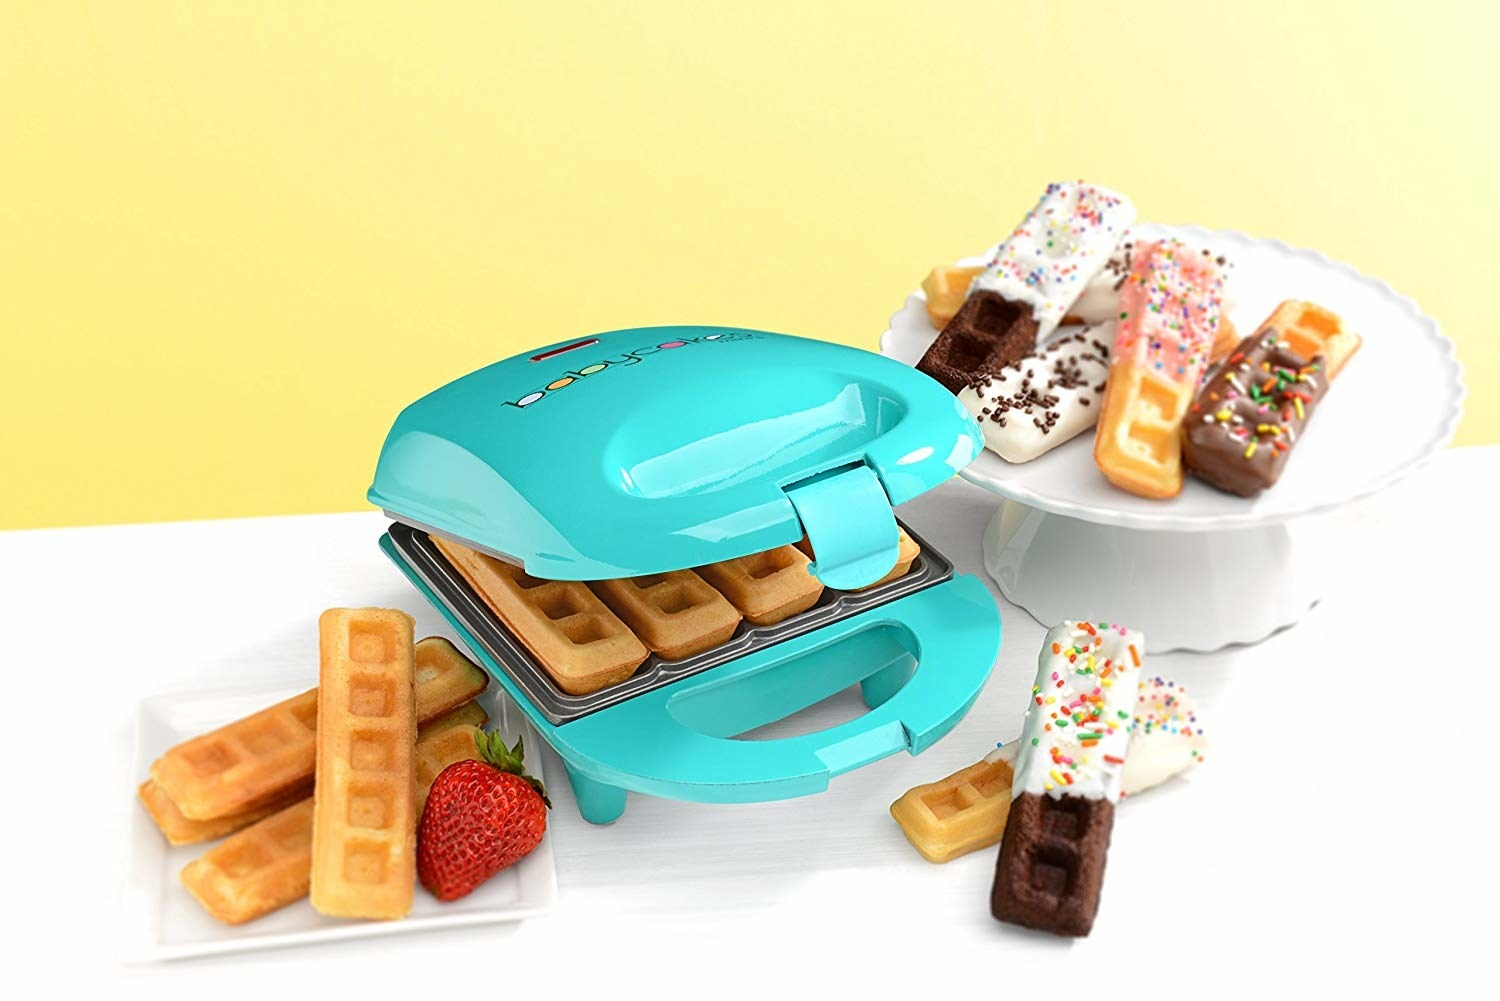 device that makes four waffle sticks